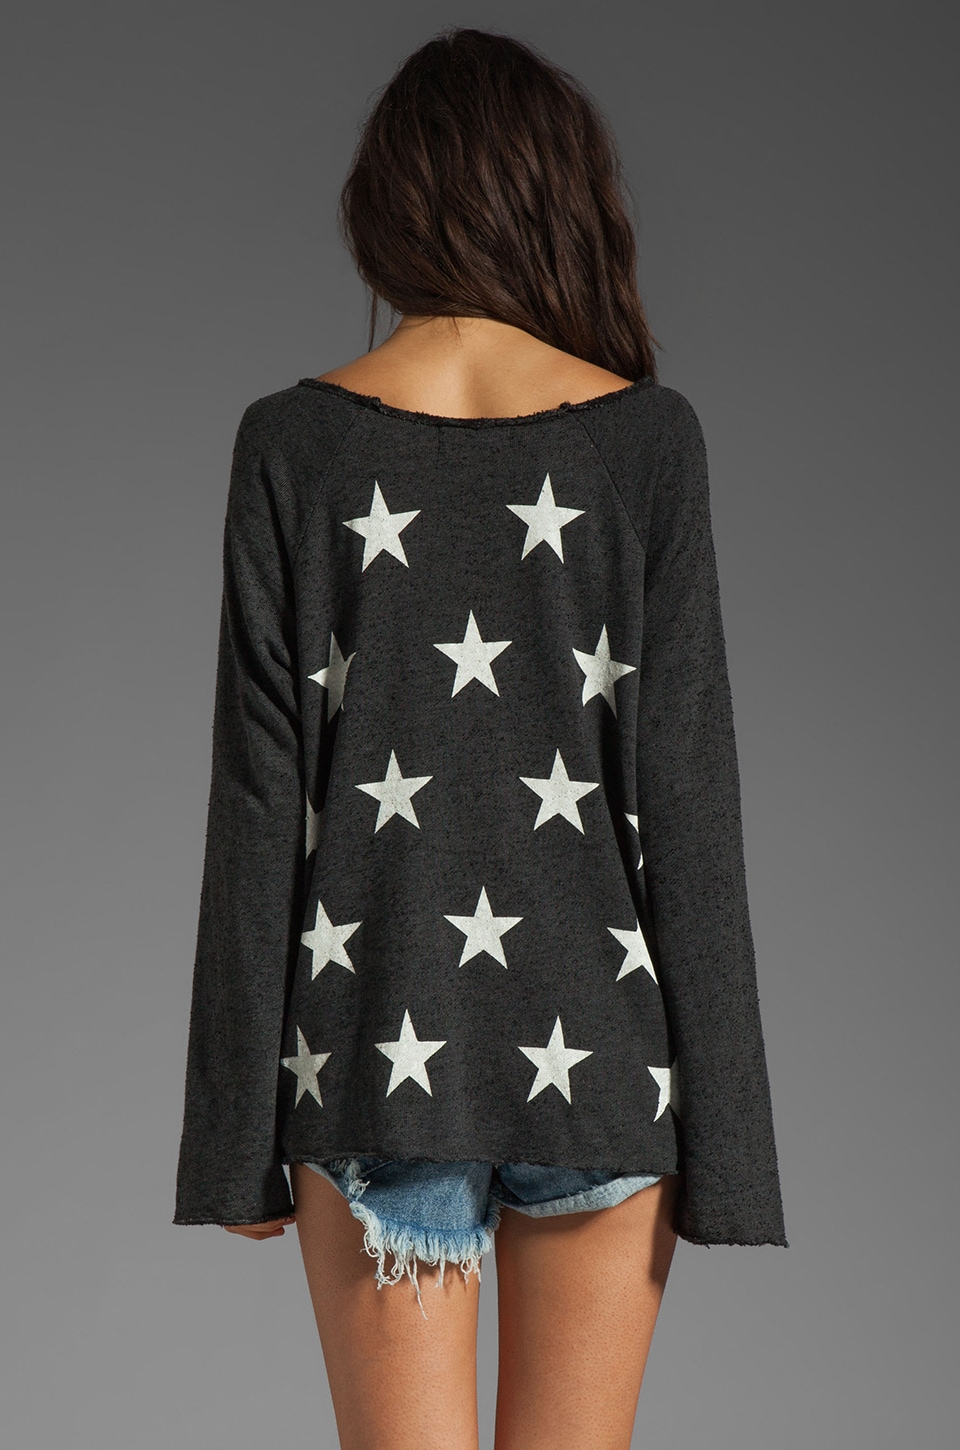 Wildfox Couture Jazzercise Stars Off the Shoulder Sweatshirt in Clean Black